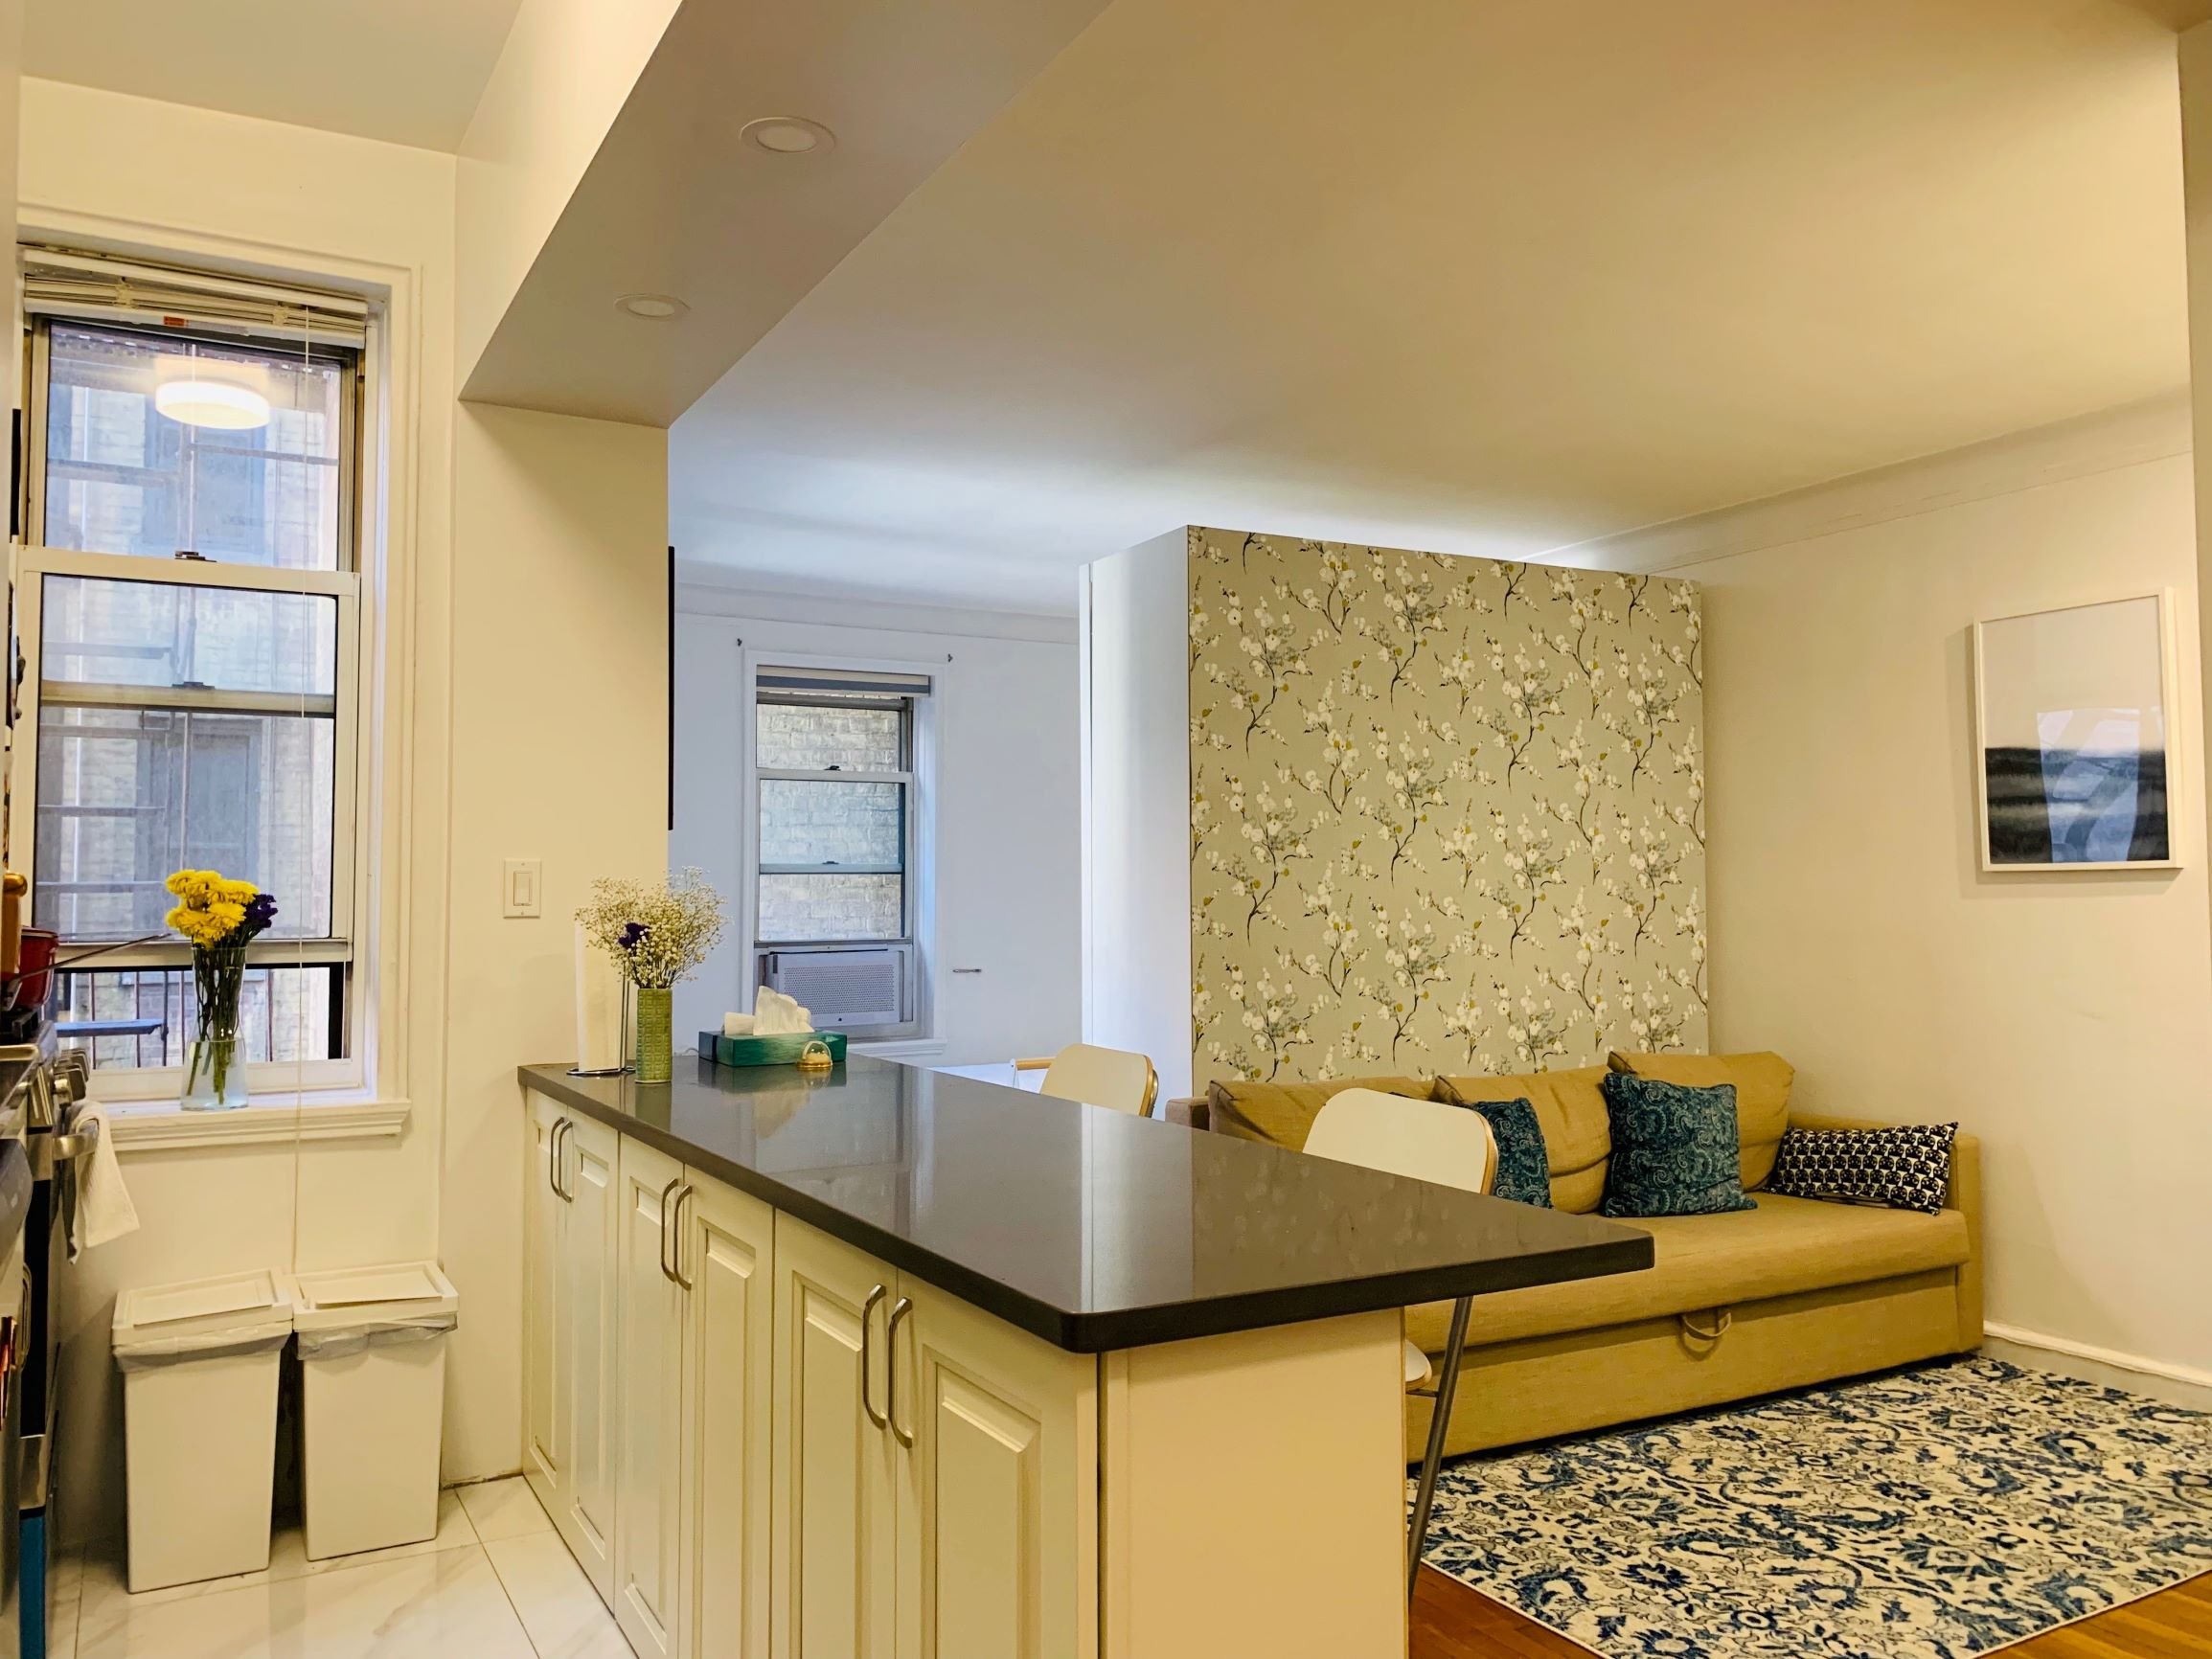 305 West 52nd Street, New York, New York, New York, United States 10019, ,1 BathroomBathrooms,Condo,Off Market,West 52nd Street,1142